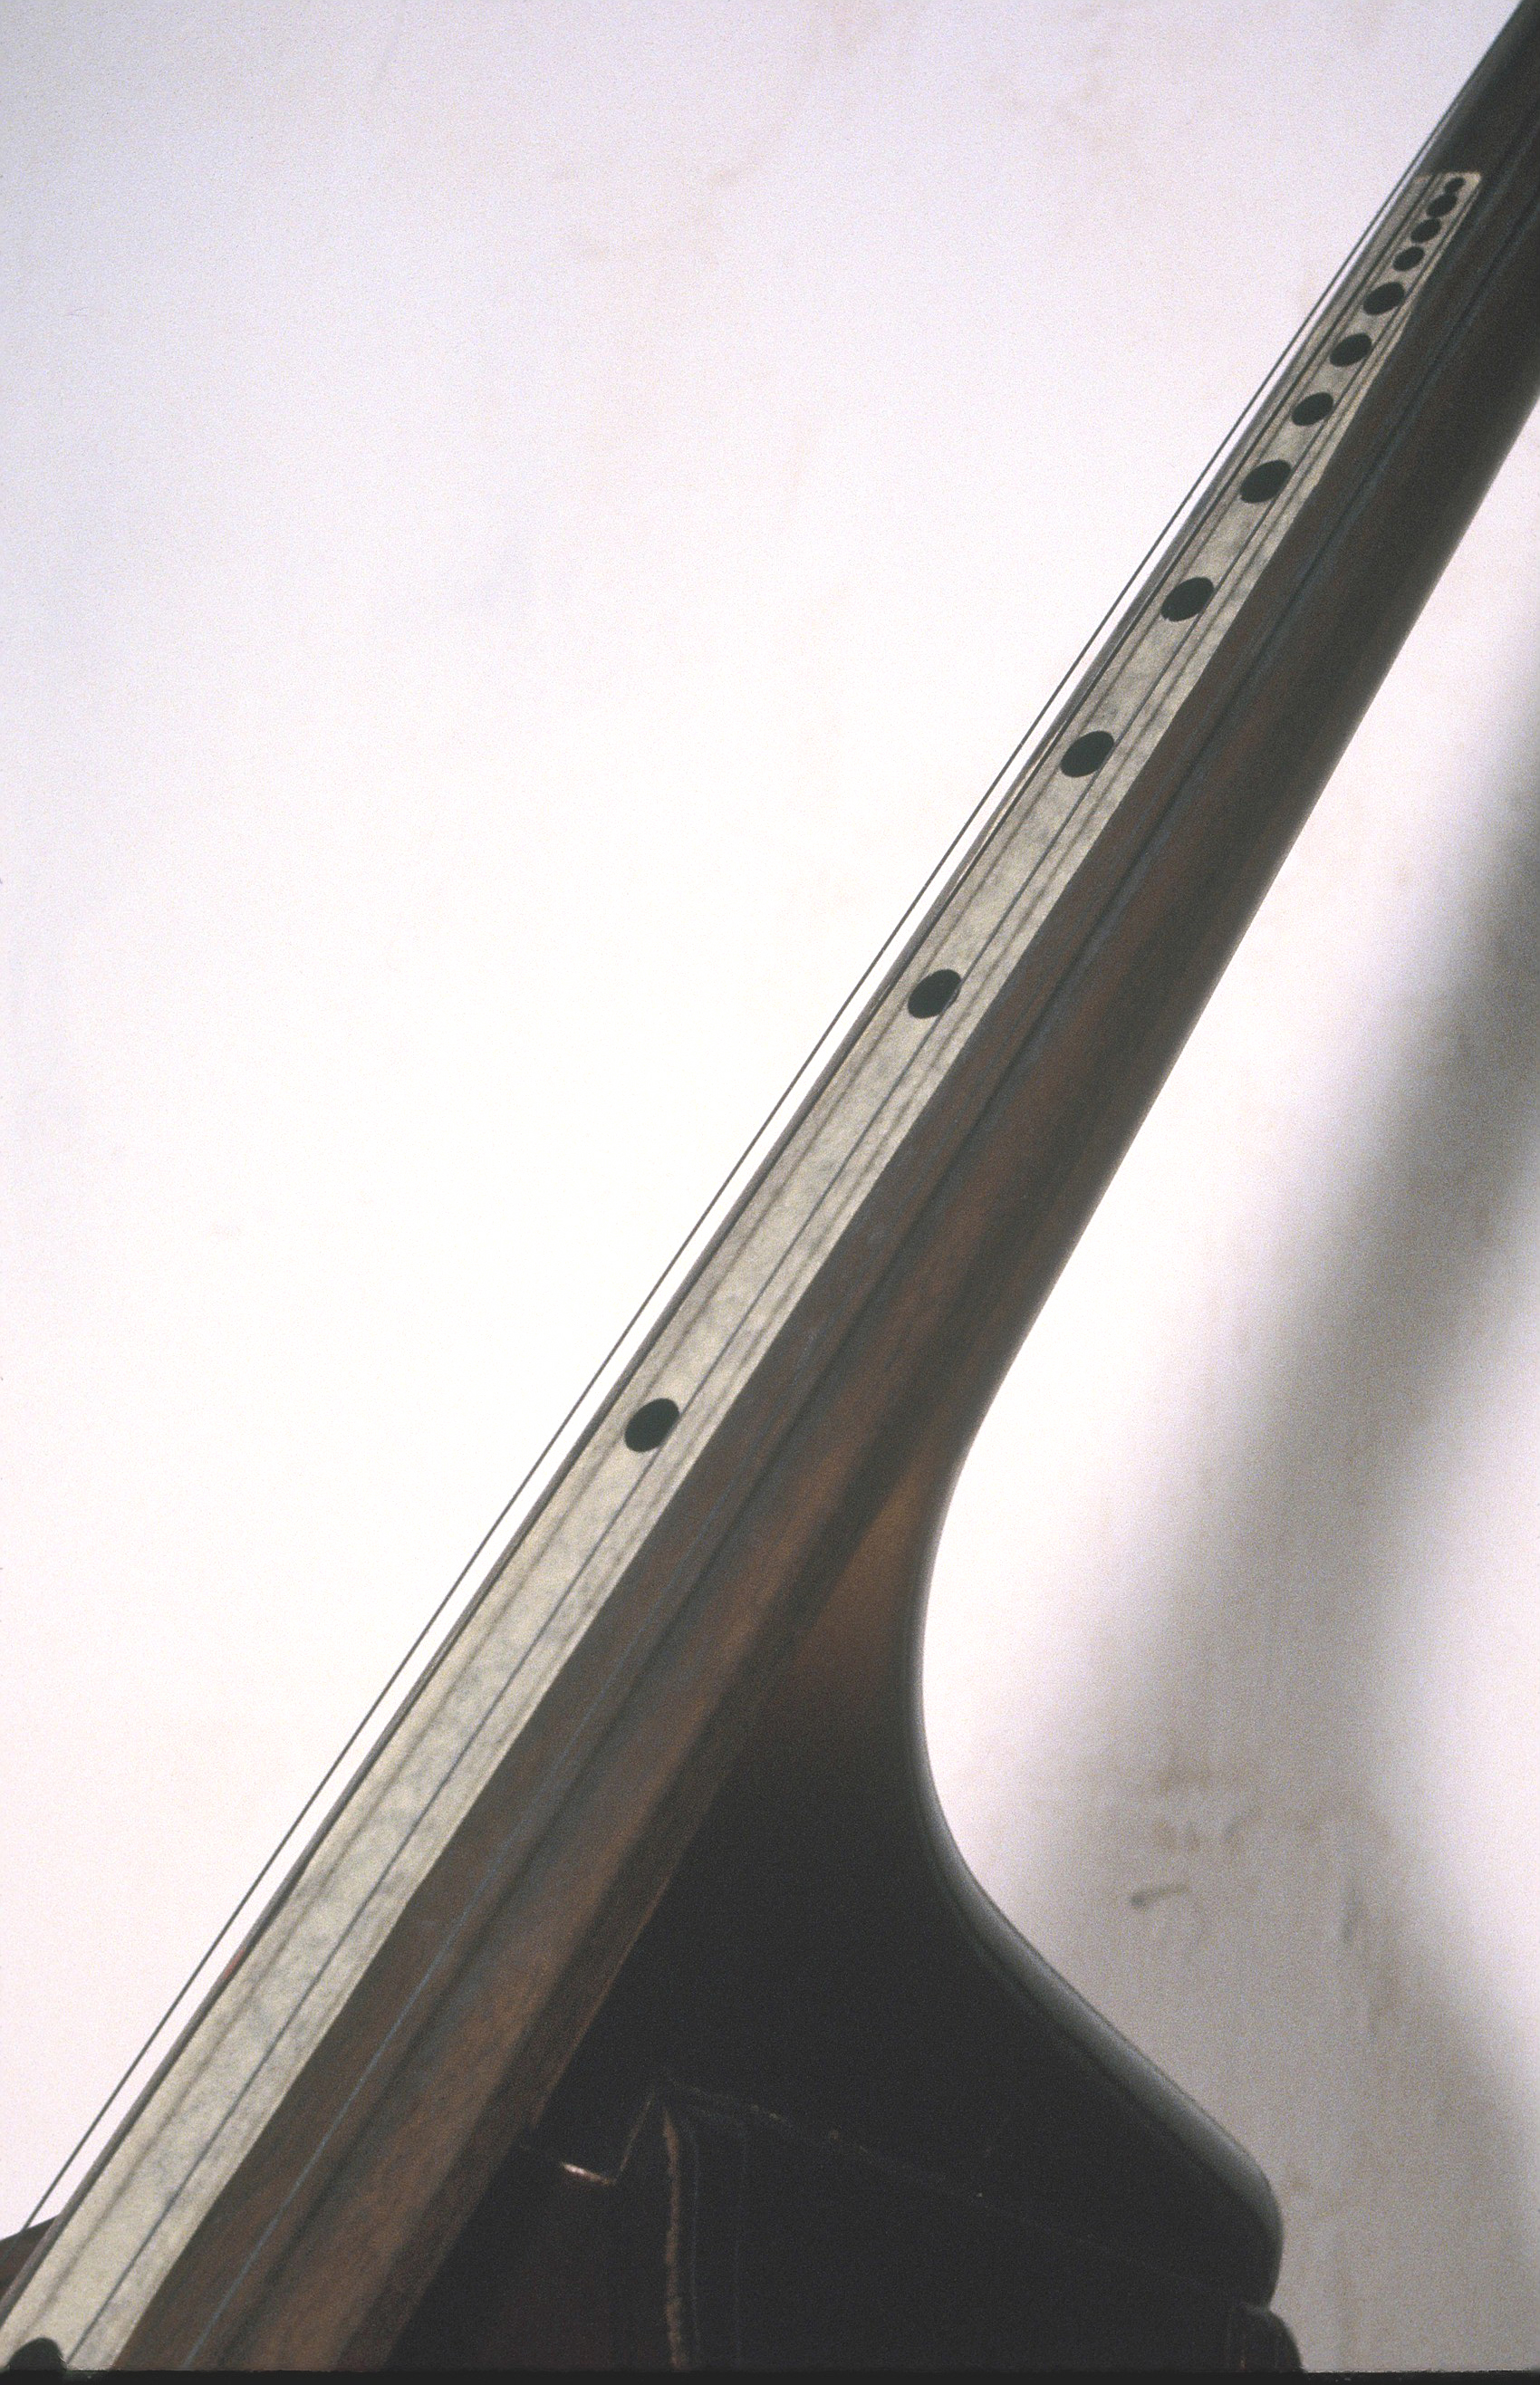 Excited String Bass with Harmonic Markings, Fulton Street Studio, 1979